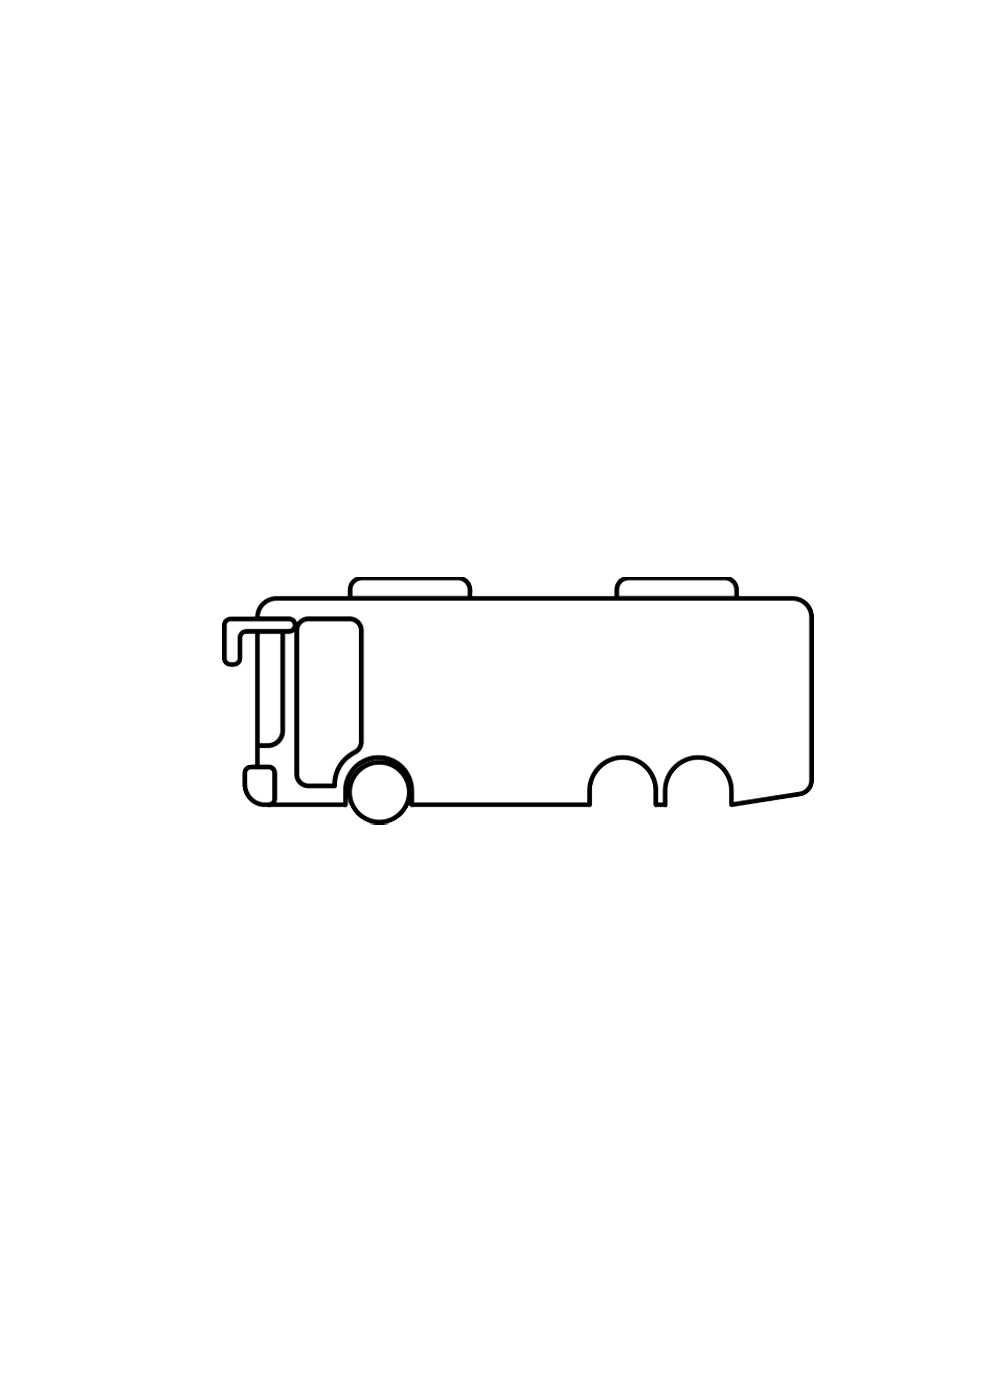 drawing a bus step 3